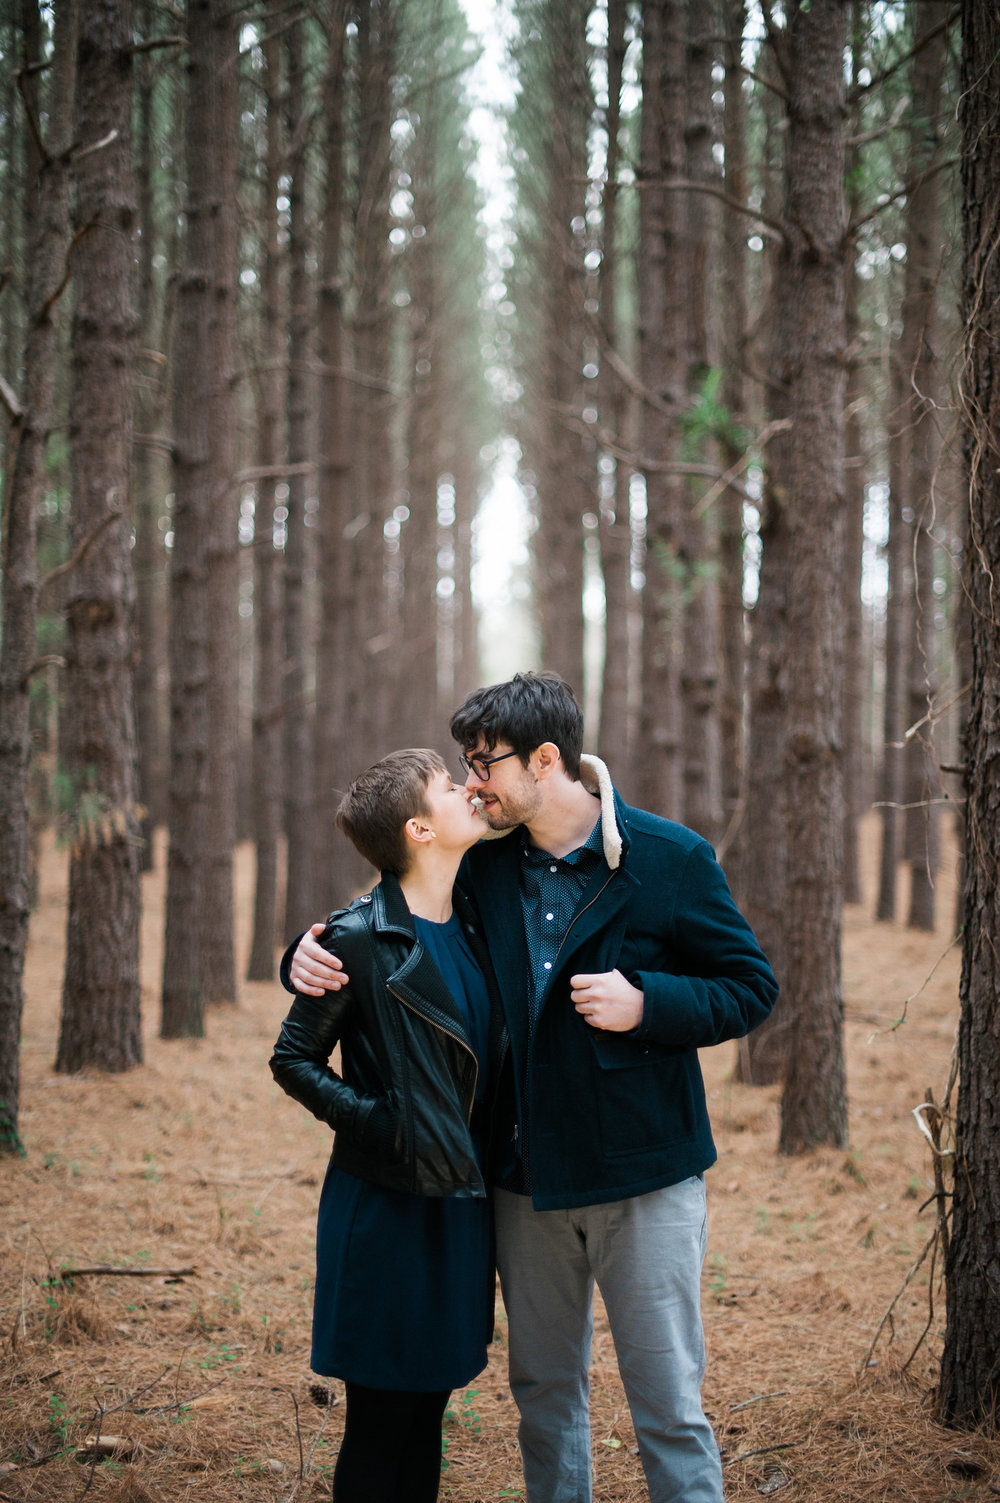 kate-andrew-engagement-062-X4.jpg